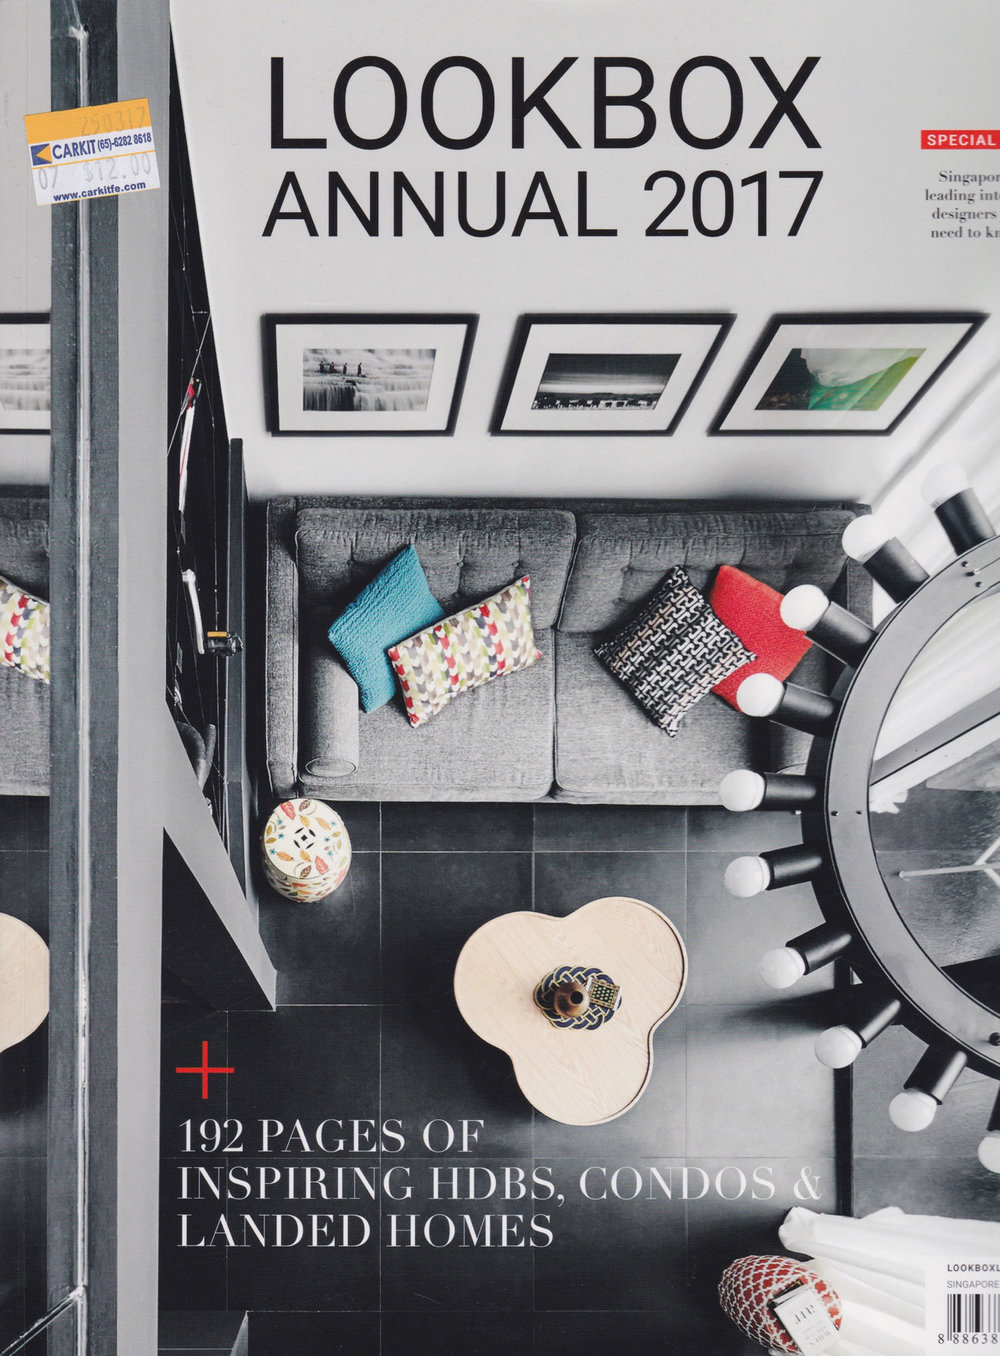 Lookbox-Annual-2017-Cover.jpg